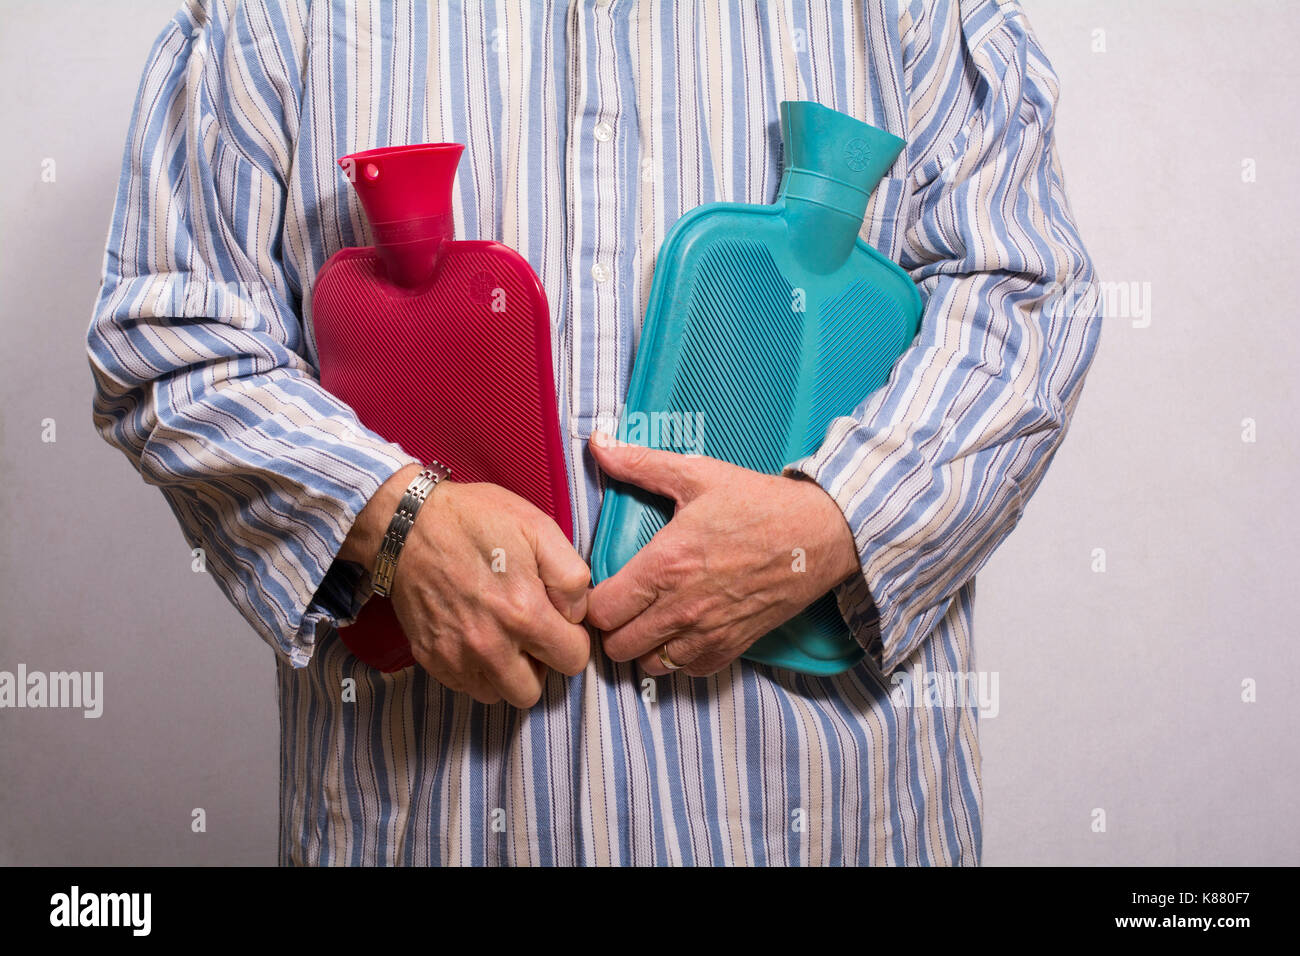 Man in a nightgown holding two hot water bottles - Stock Image